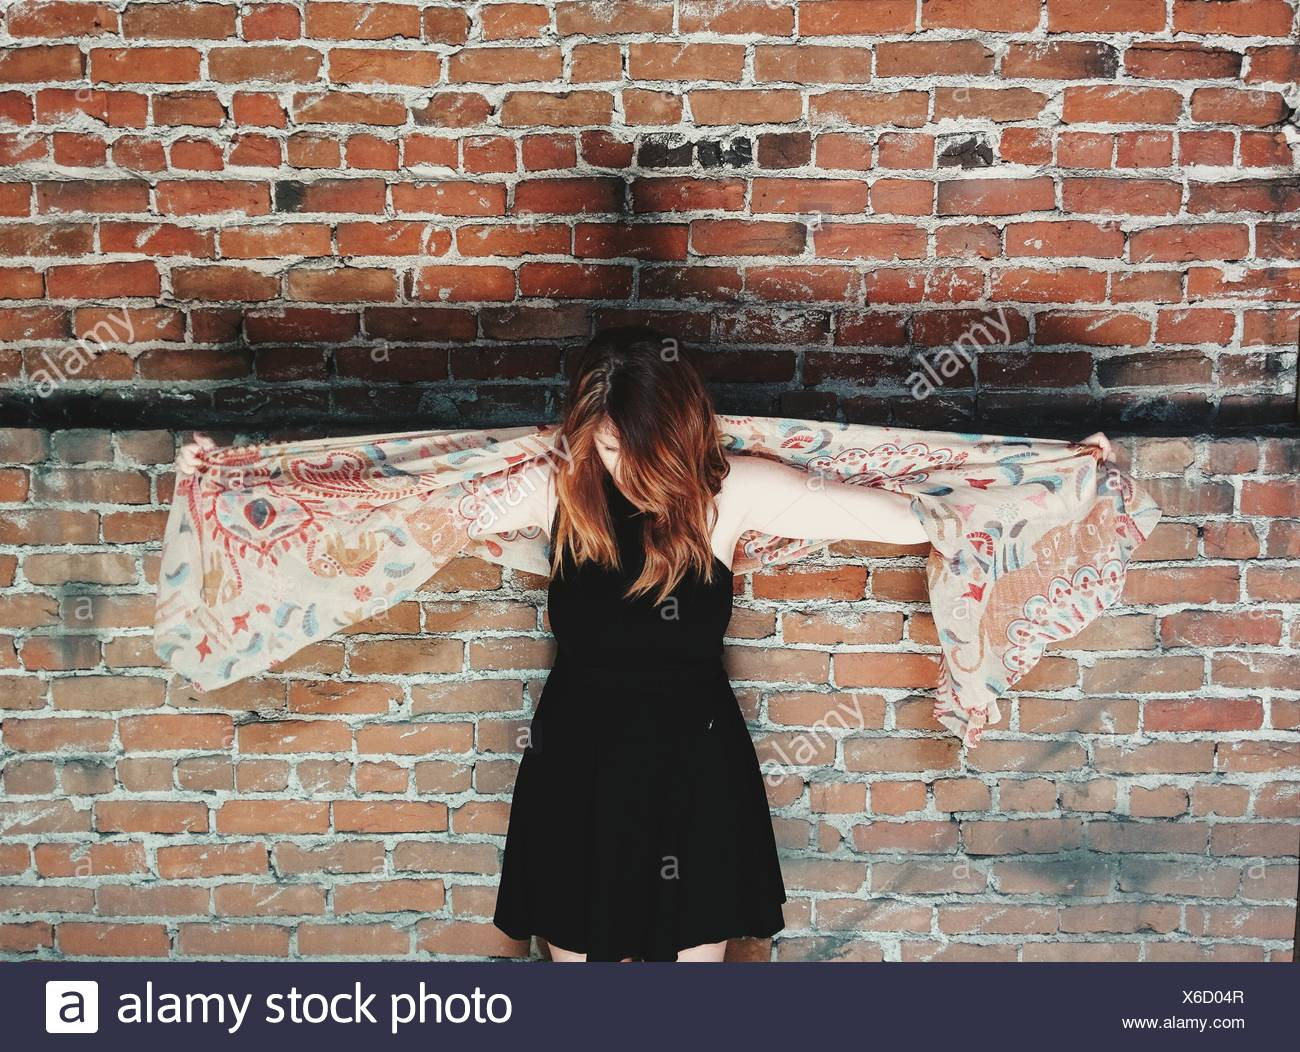 Young Woman Standing Against Brick Wall - Stock Image